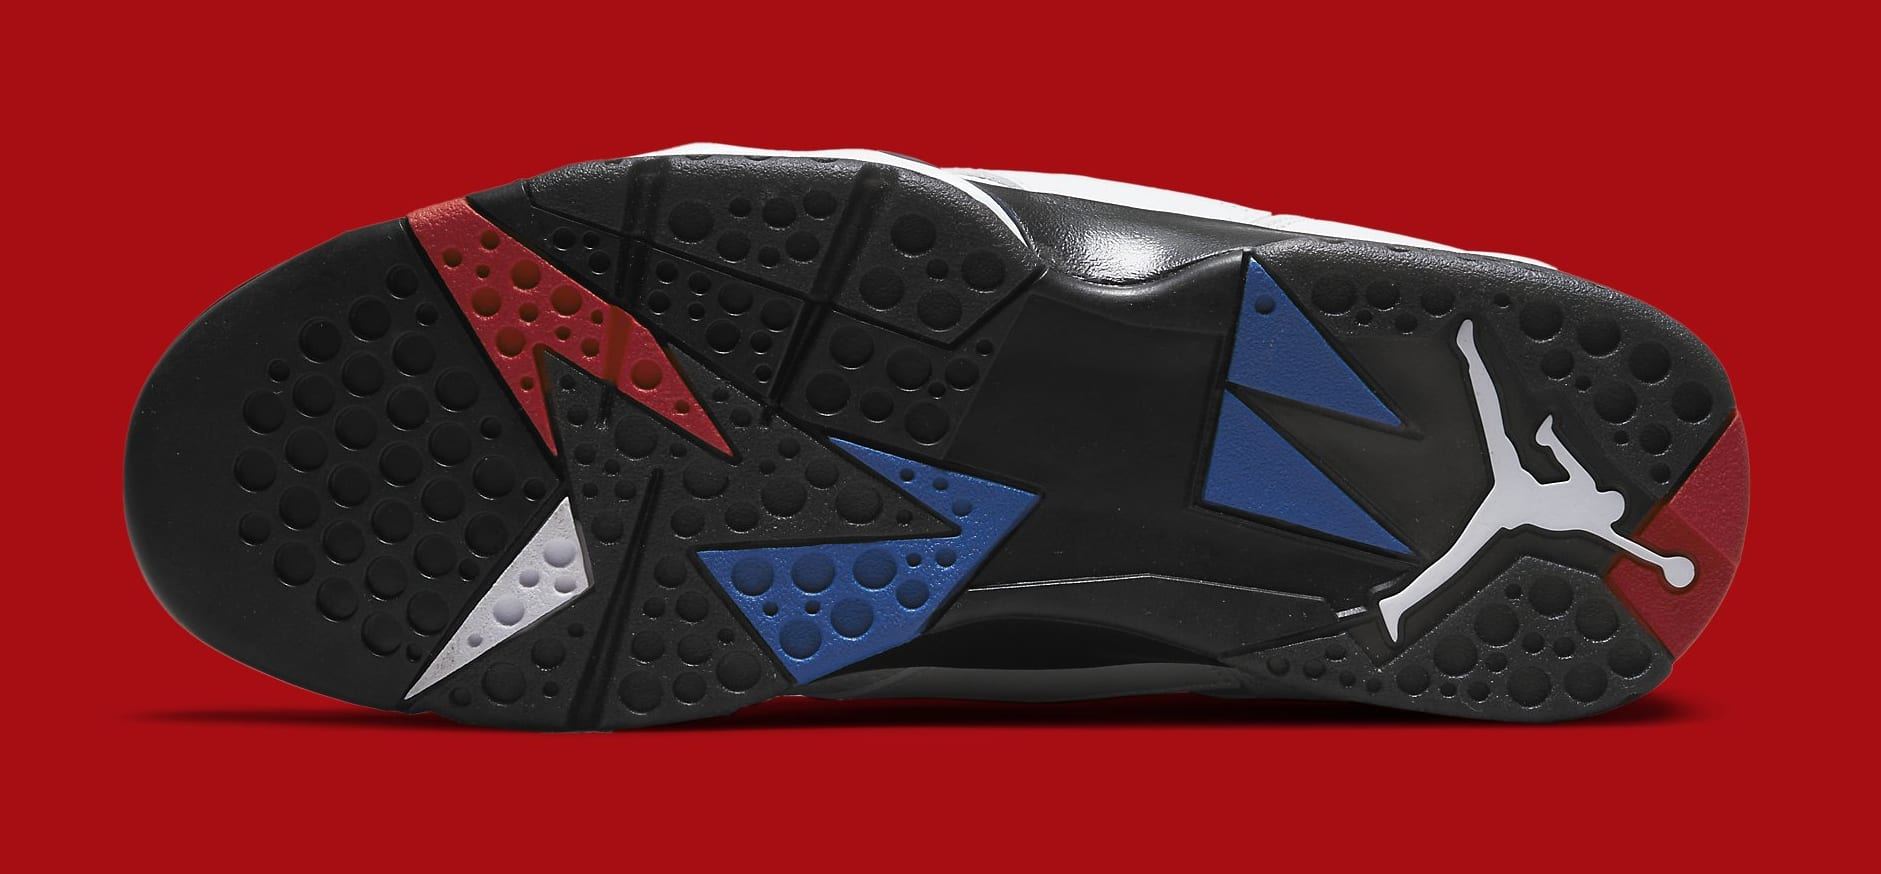 PSG x Air Jordan 7 Retro CZ0789-105 Outsole